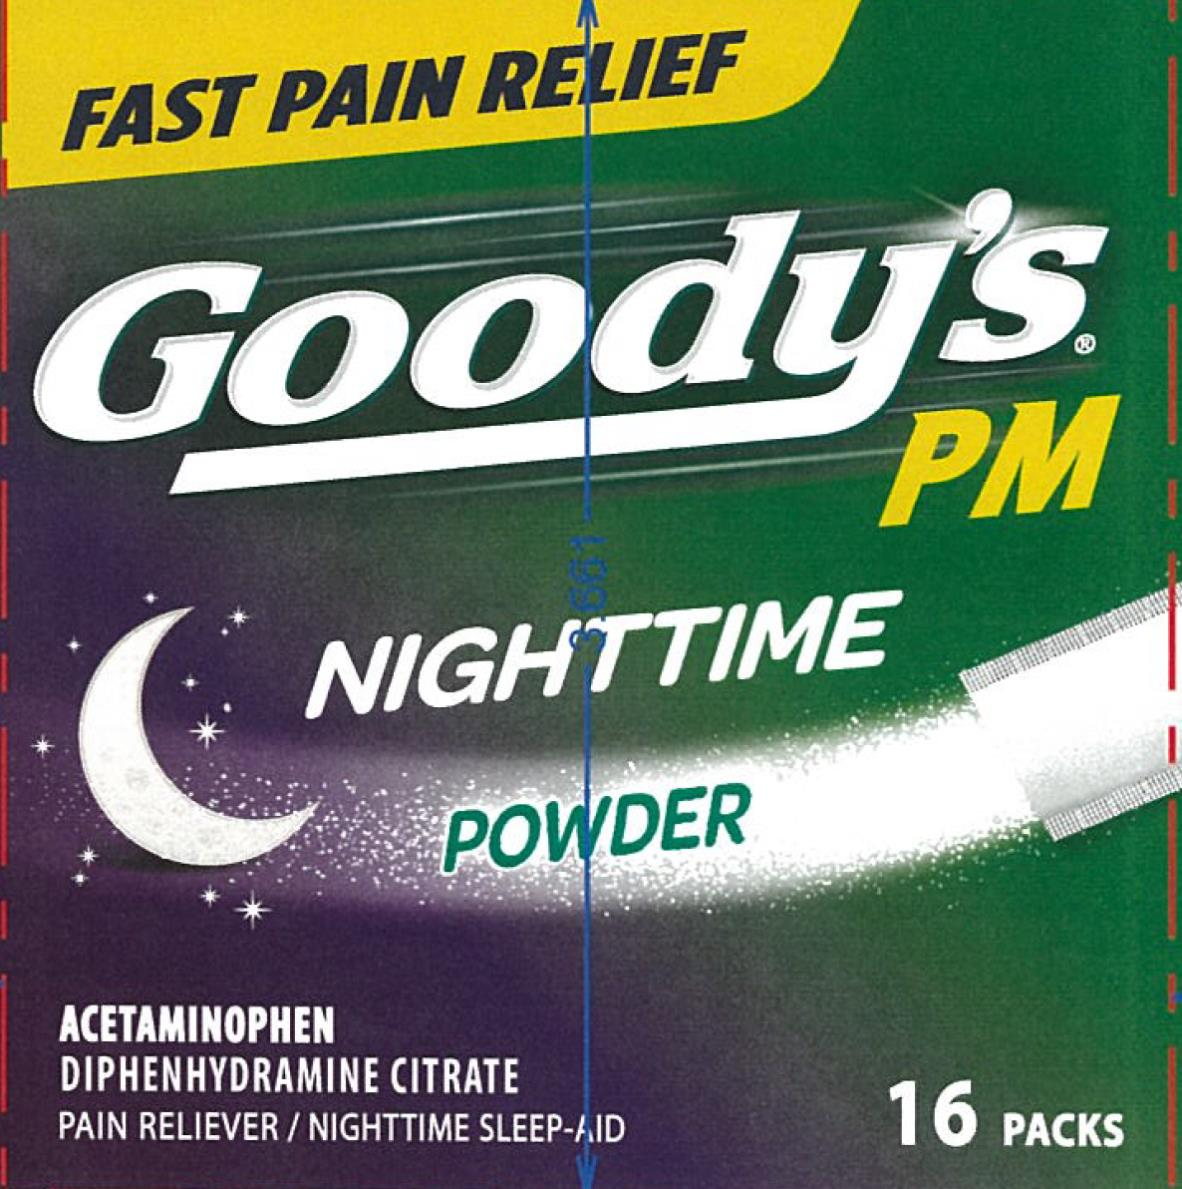 Goodys Pm Pain Reliever (Acetaminophen And Diphenhydramine Citrate) Powder [Medtech Products Inc.]